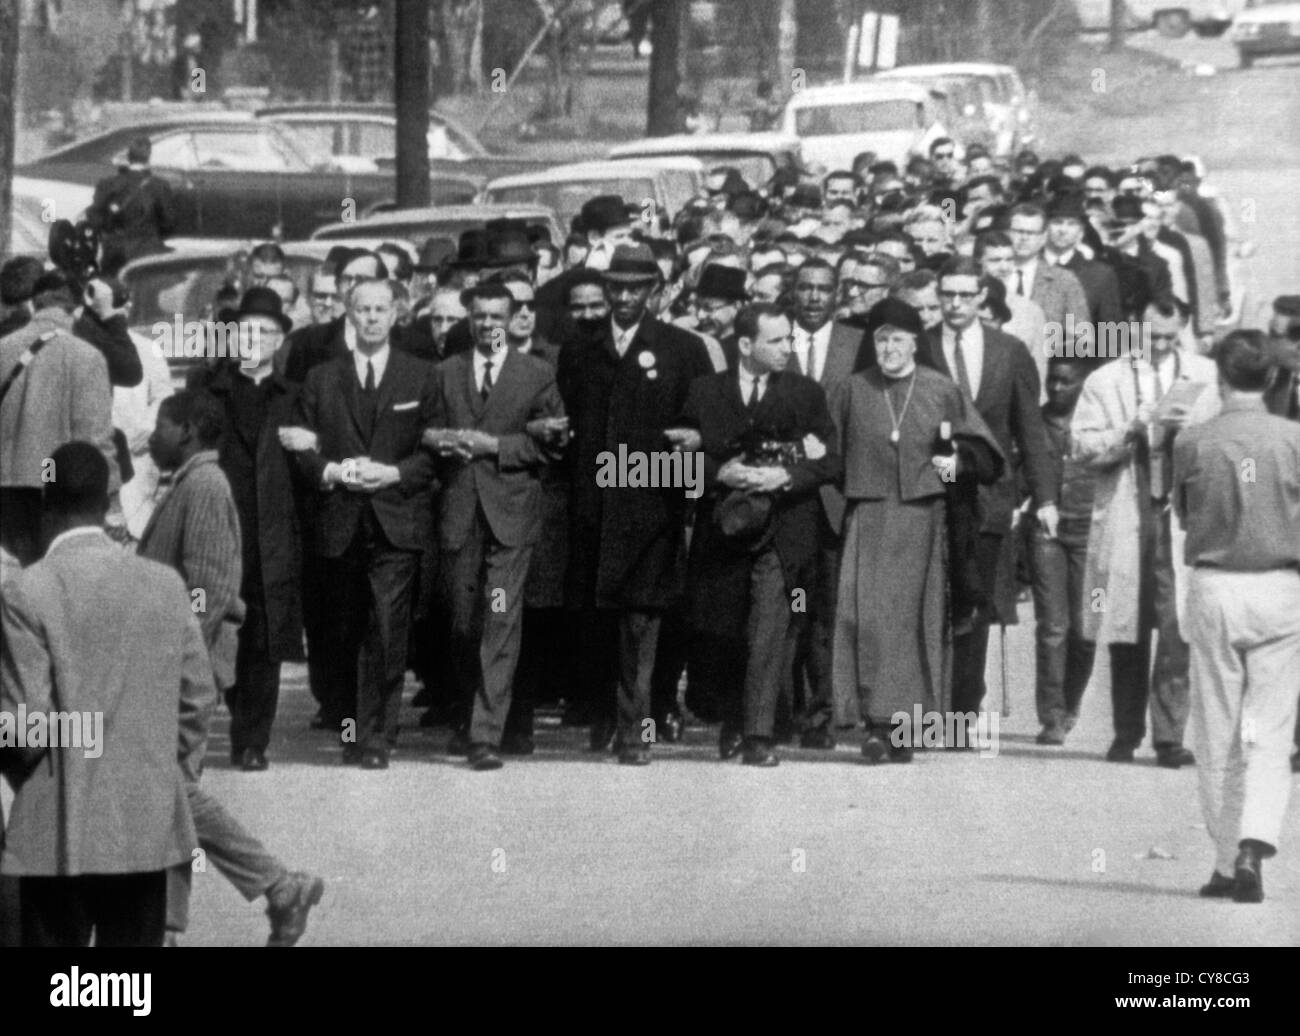 Civil Rights Demonstrators Marching, Selma, Alabama, March 15, 1965 - Stock Image